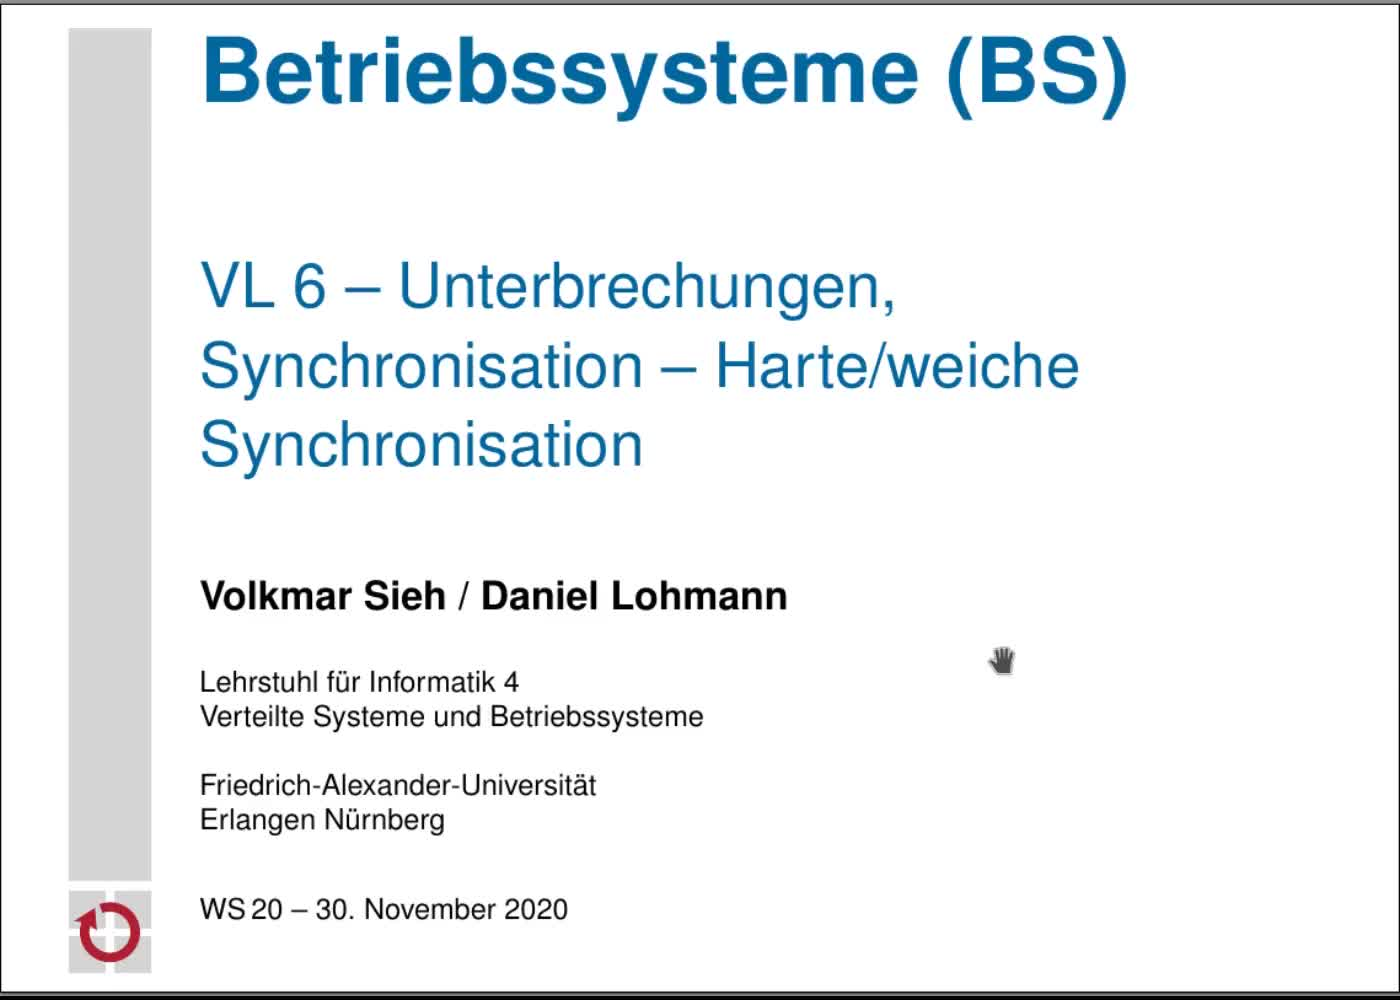 Harte/weiche Synchronisation preview image